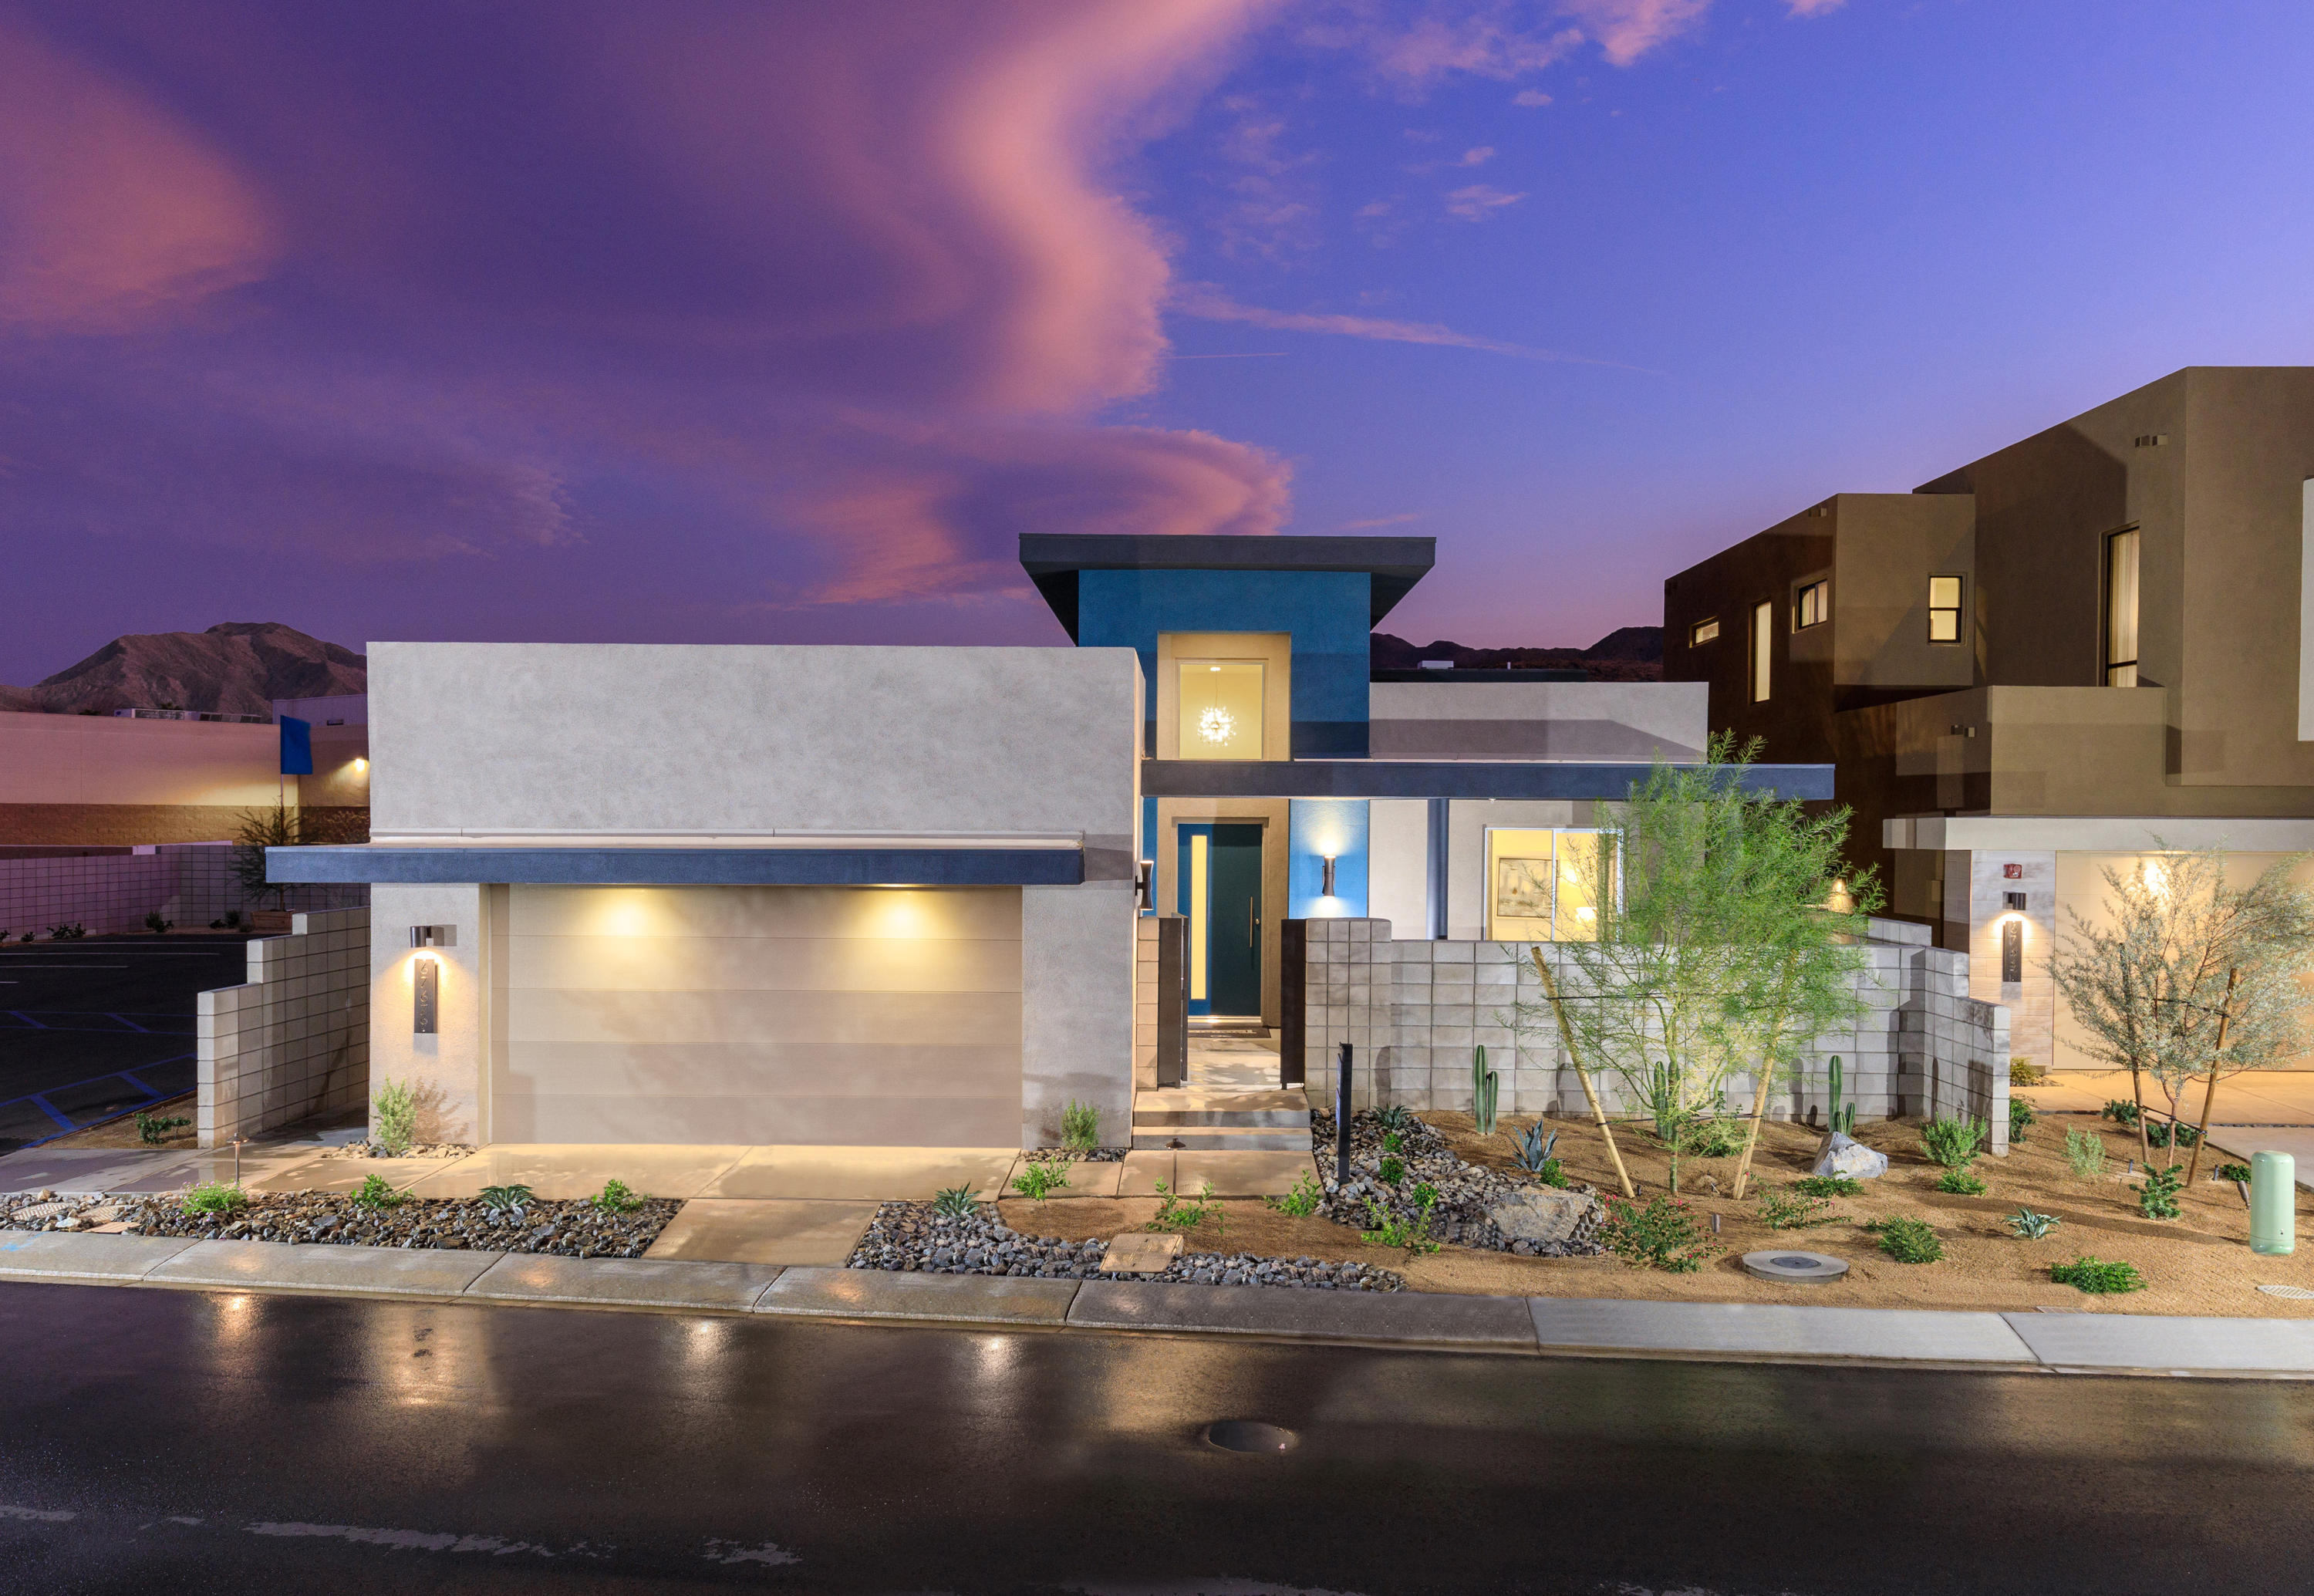 May 2021 Move in! Welcome to District East, a boutique new home community on the edge of Palm Springs & Cathedral city.  Parker Signature Series Lot 11. This Single Story Stunner boosts grand ceiling height, clerestory windows, light, bright and open. 2 bedrooms, a den or 3rd Bedroom and 3 baths at 1,836 Square Feet. Open concept 21 Century living, 8' low-e glass triple sliding glass doors that lead out to a beautiful patio. STANDARD - 24x24 designer porcelain tile flooring in all living areas and designer carpet in the bedrooms. Pre-wired for speakers in great room, outdoor living, and master bedroom. Social Kitchen with quartz countertops and backsplash. All Kitchen appliances included. The list goes on and on, these homes really are a must see. Call today to book an appointment! Photos are of Model Home rendering colors/options may vary.